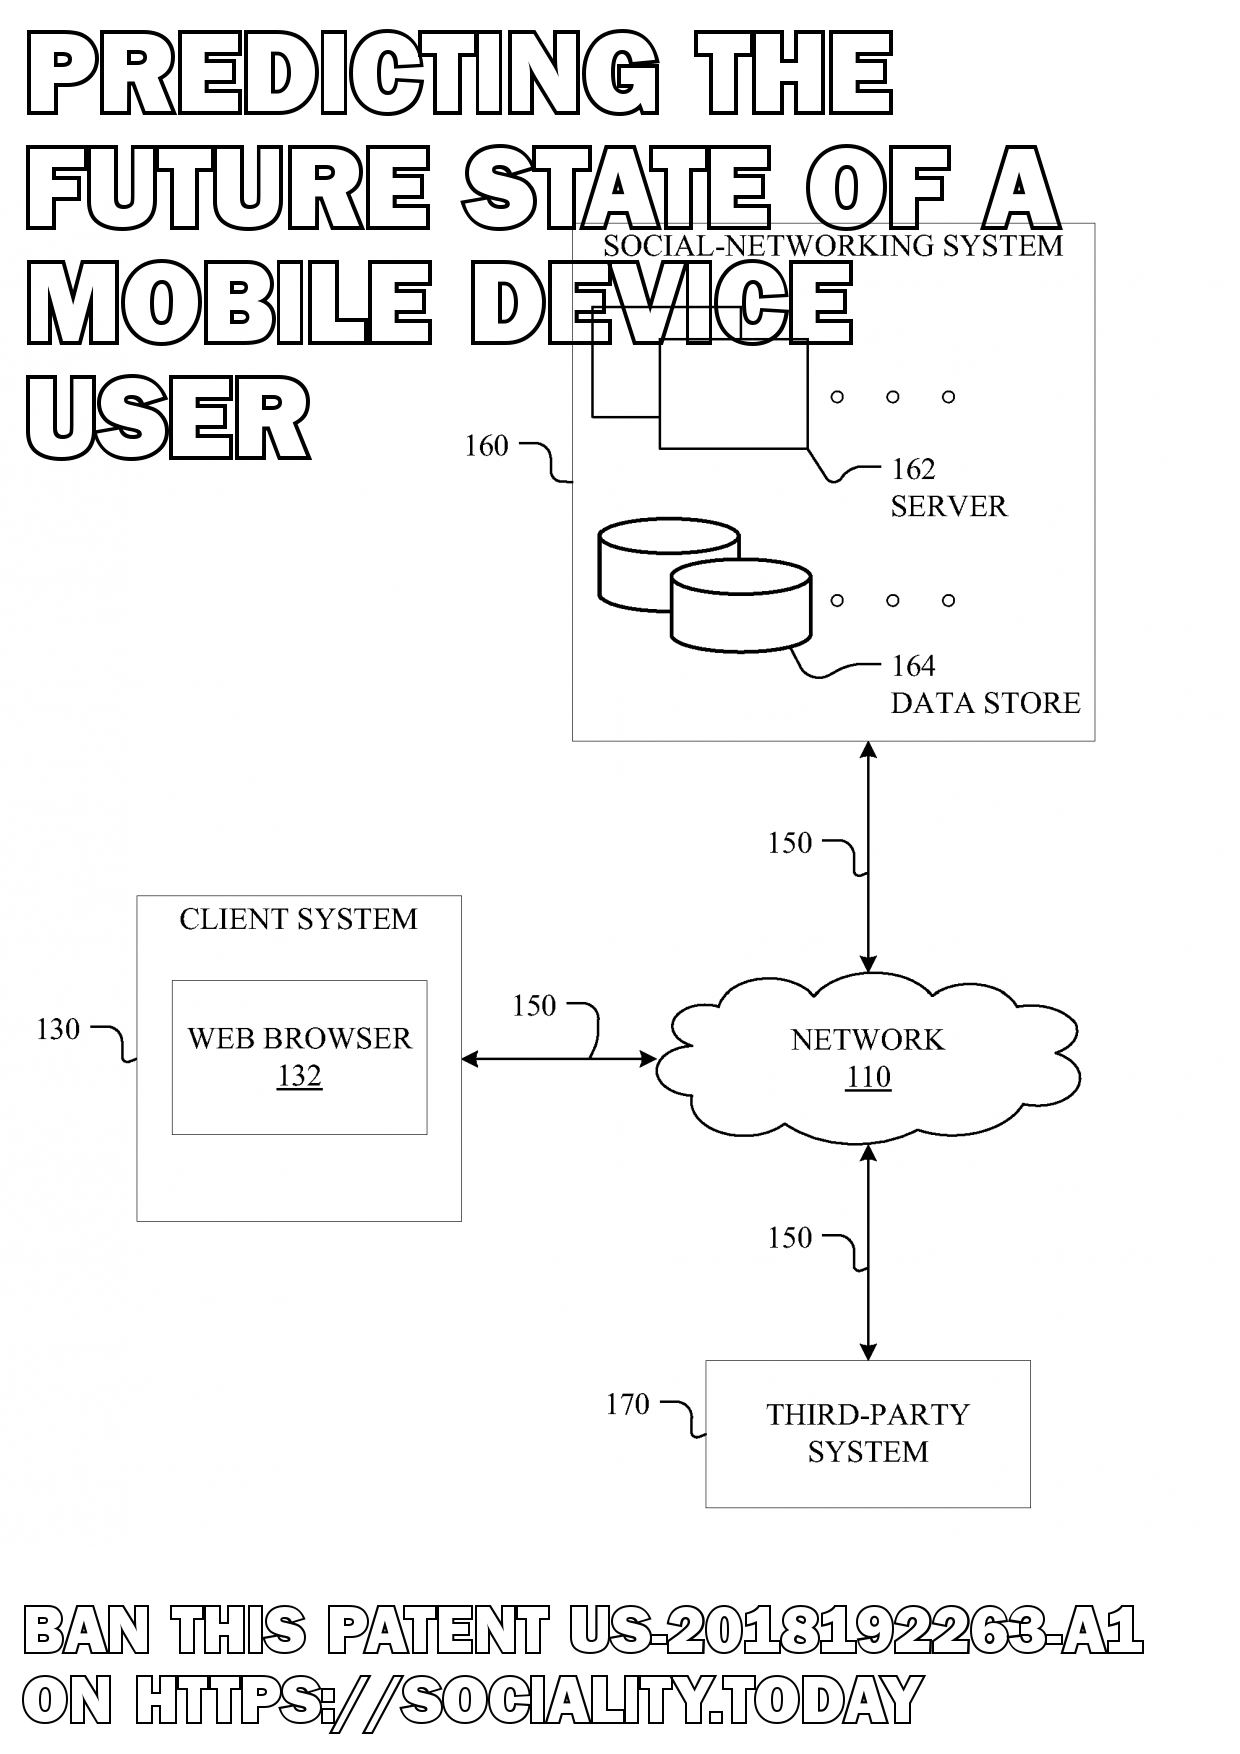 Predicting the future state of a mobile device user  - US-2018192263-A1